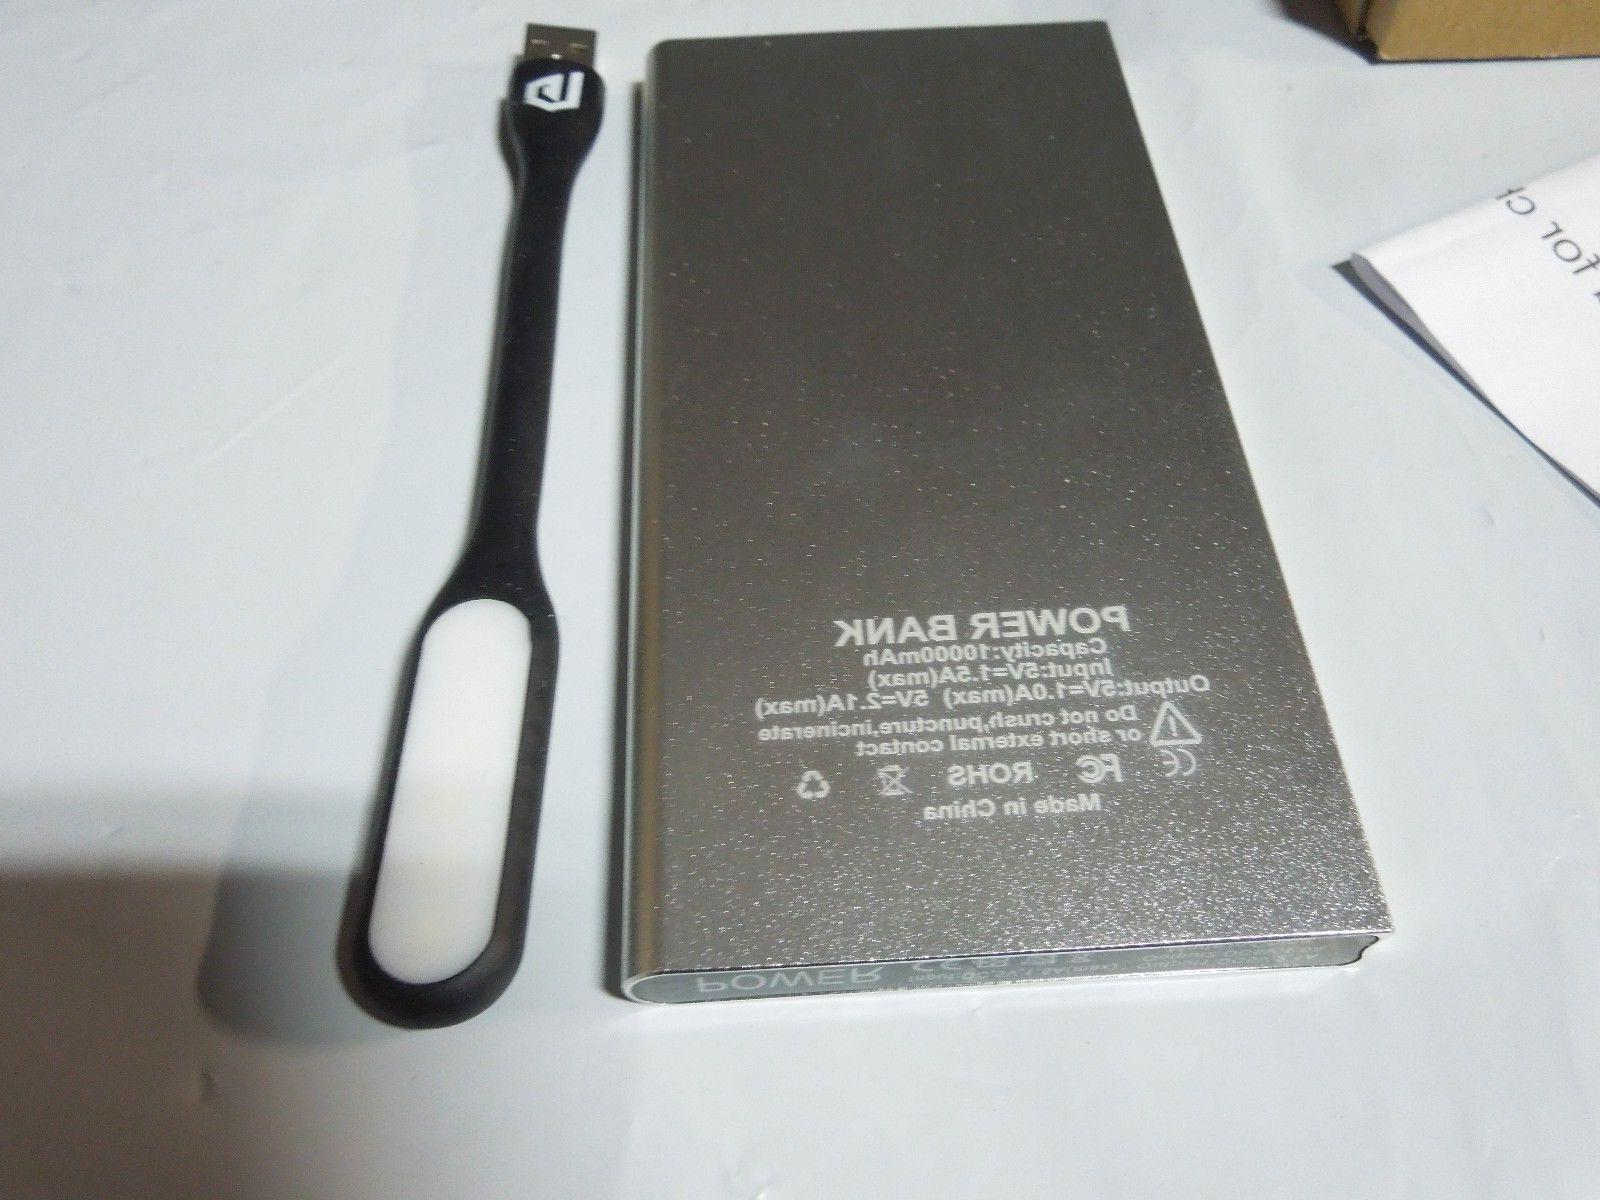 W/Extra Book Port Portable Power Bank